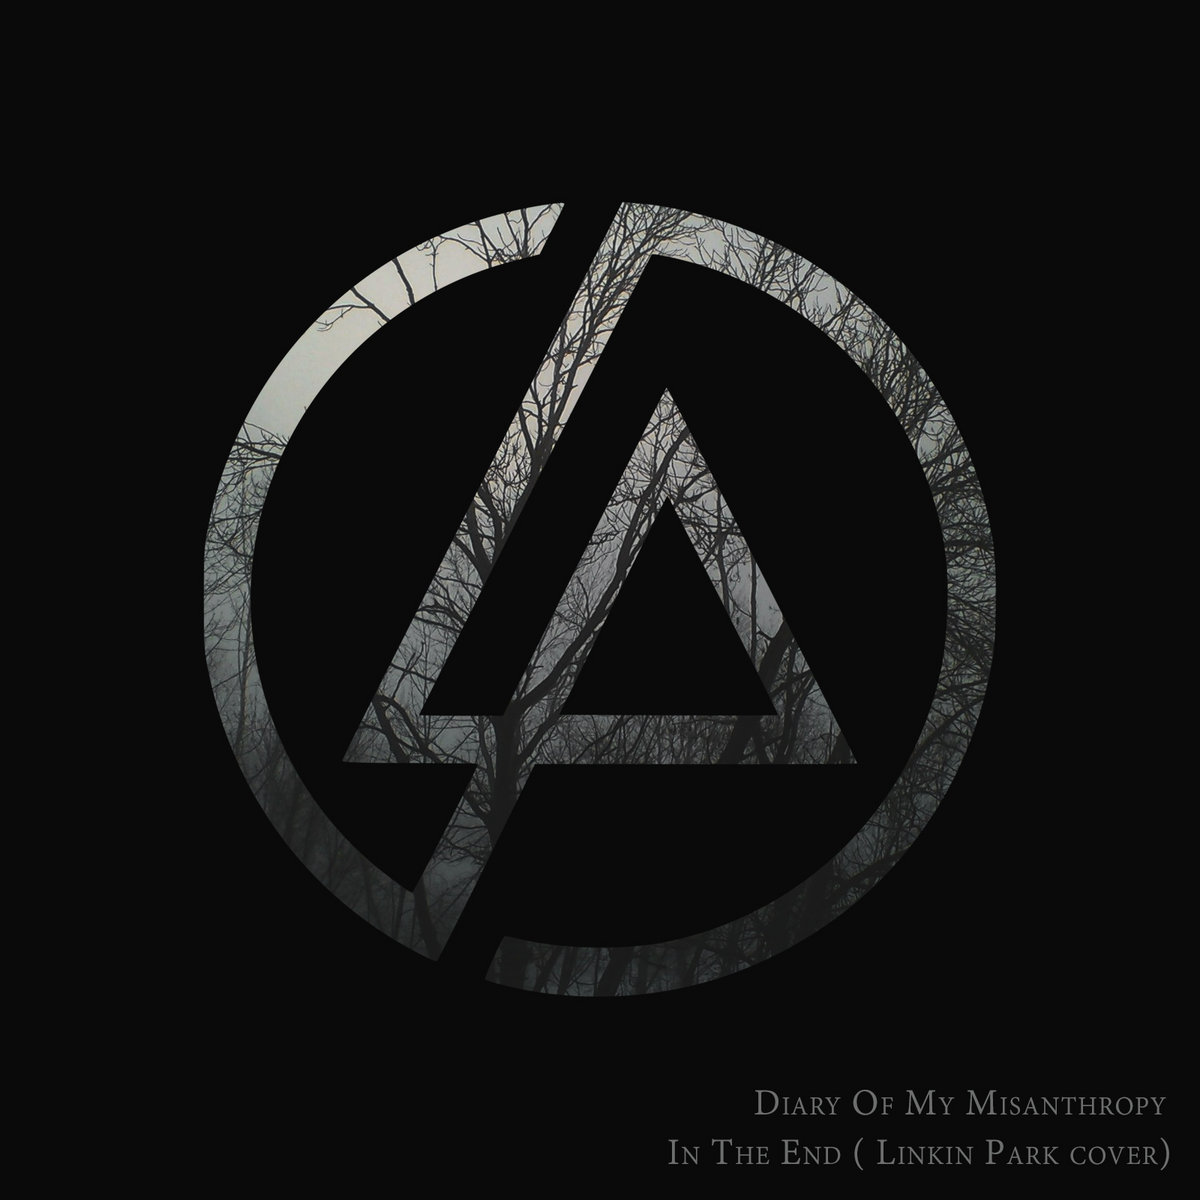 In The End (Linkin Park cover) | Diary Of My Misanthropy